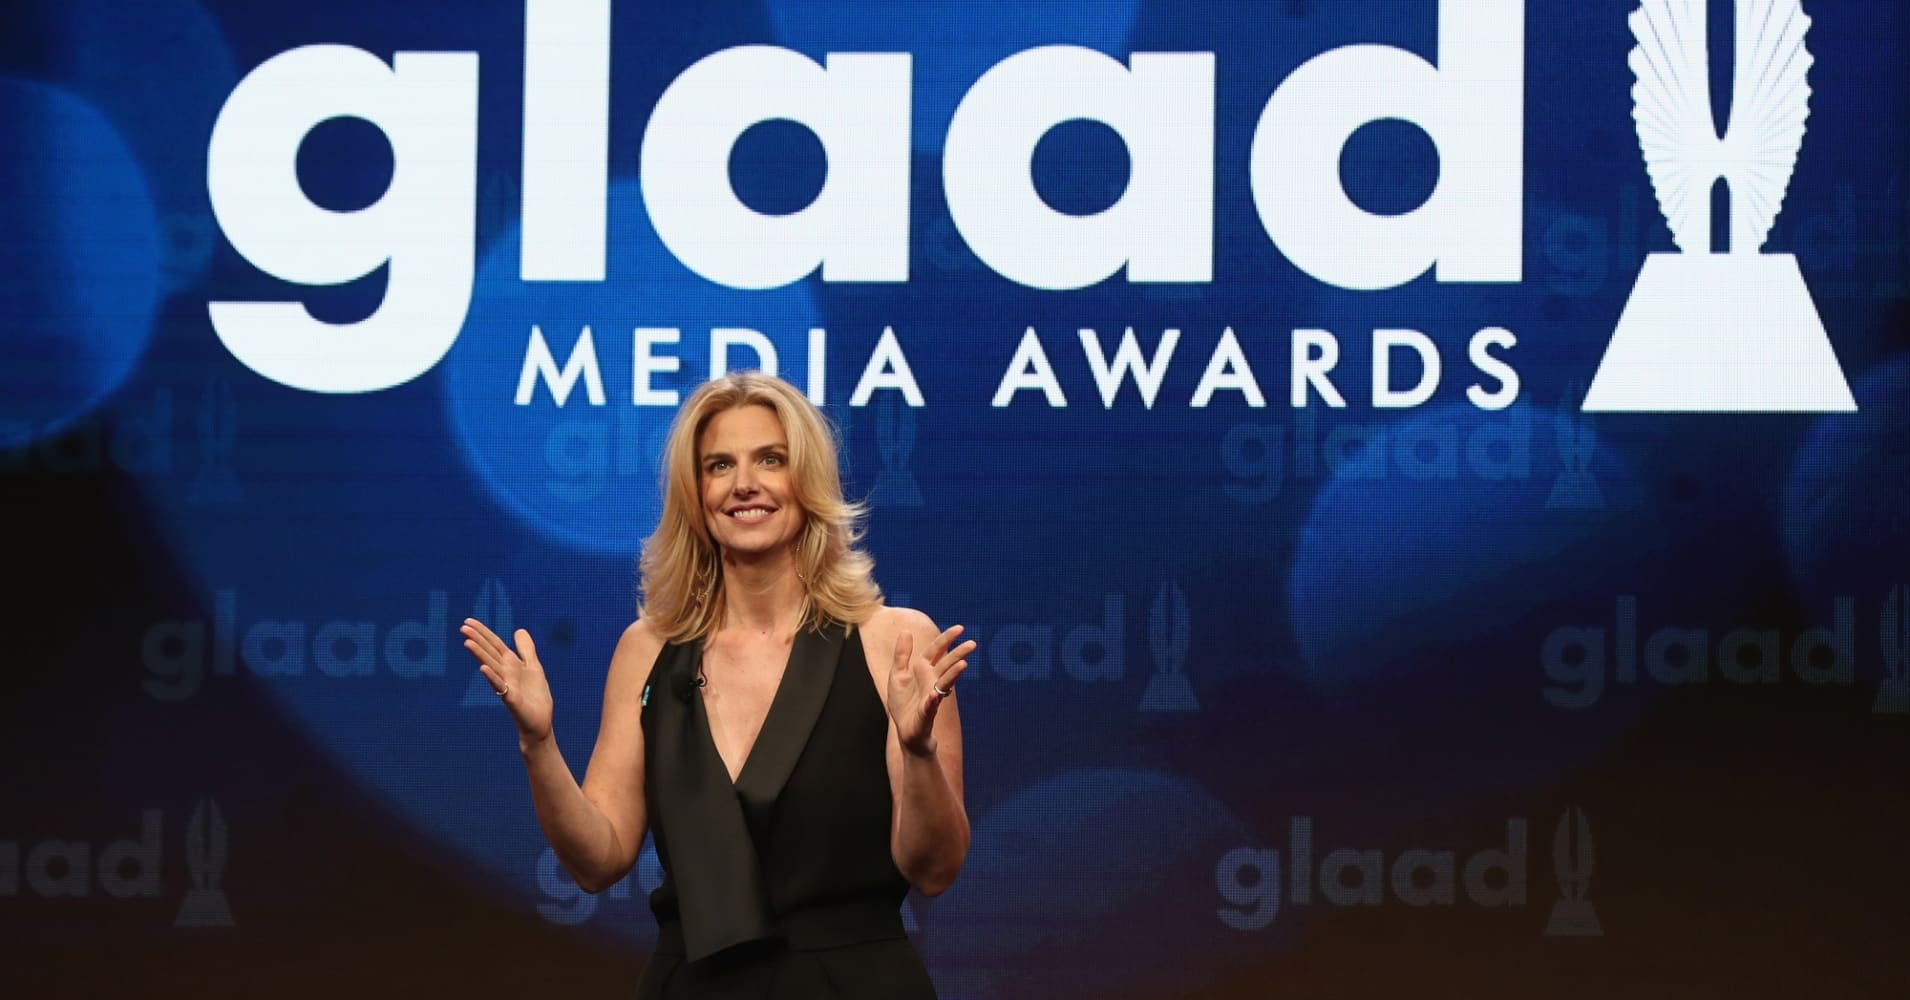 Make sure to 'pitch yourself,' says CEO of GLAAD—here's how